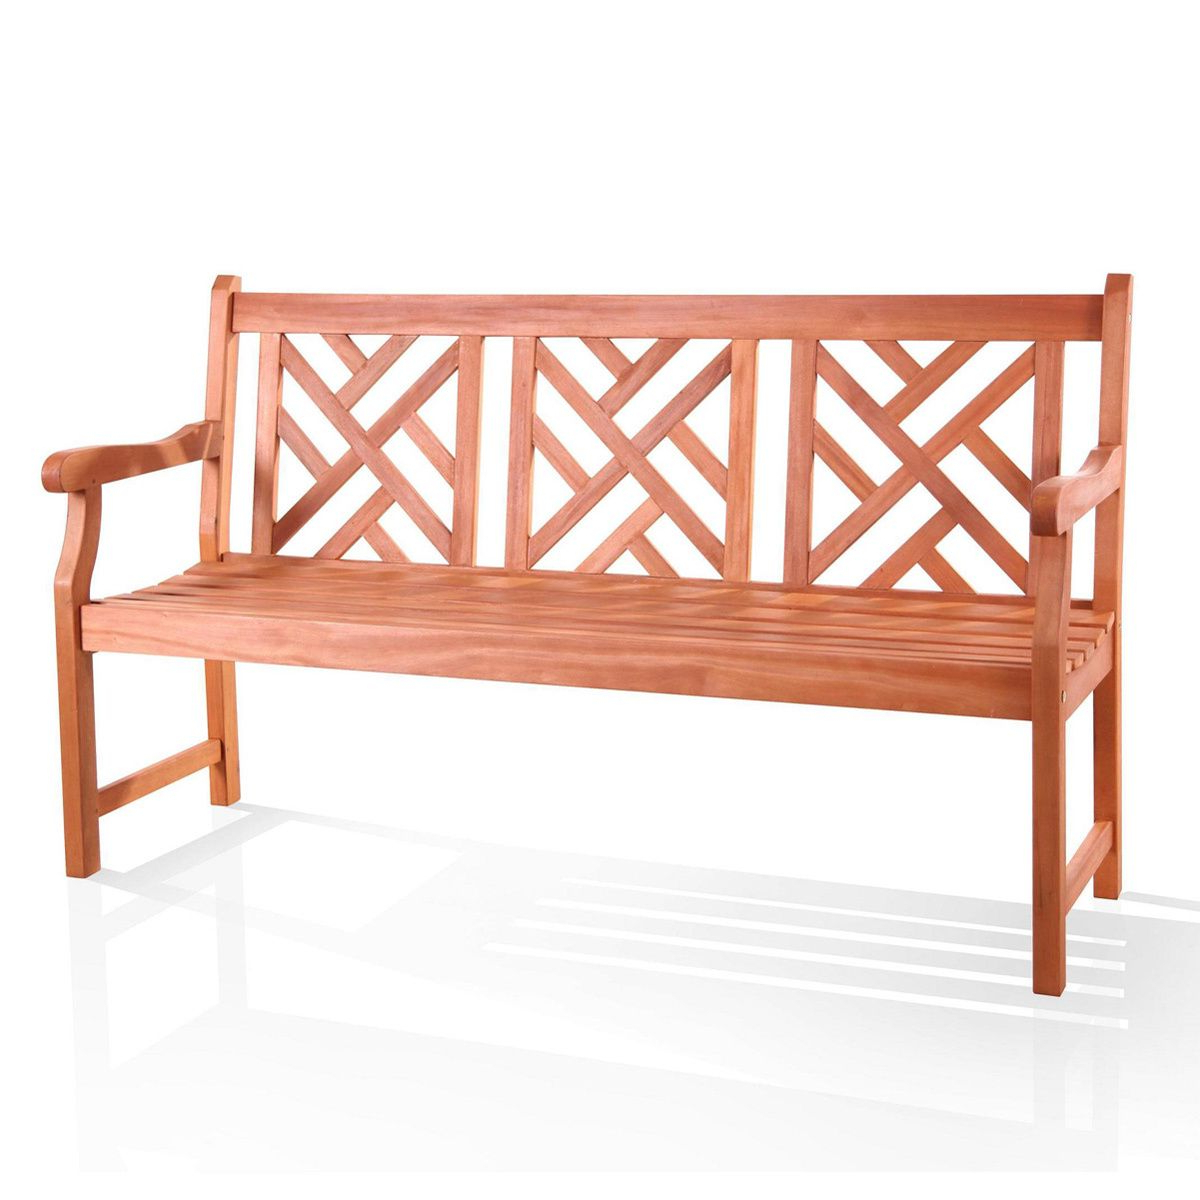 Harpersfield Wooden Garden Benches In Favorite Online Shopping – Bedding, Furniture, Electronics, Jewelry (View 17 of 30)